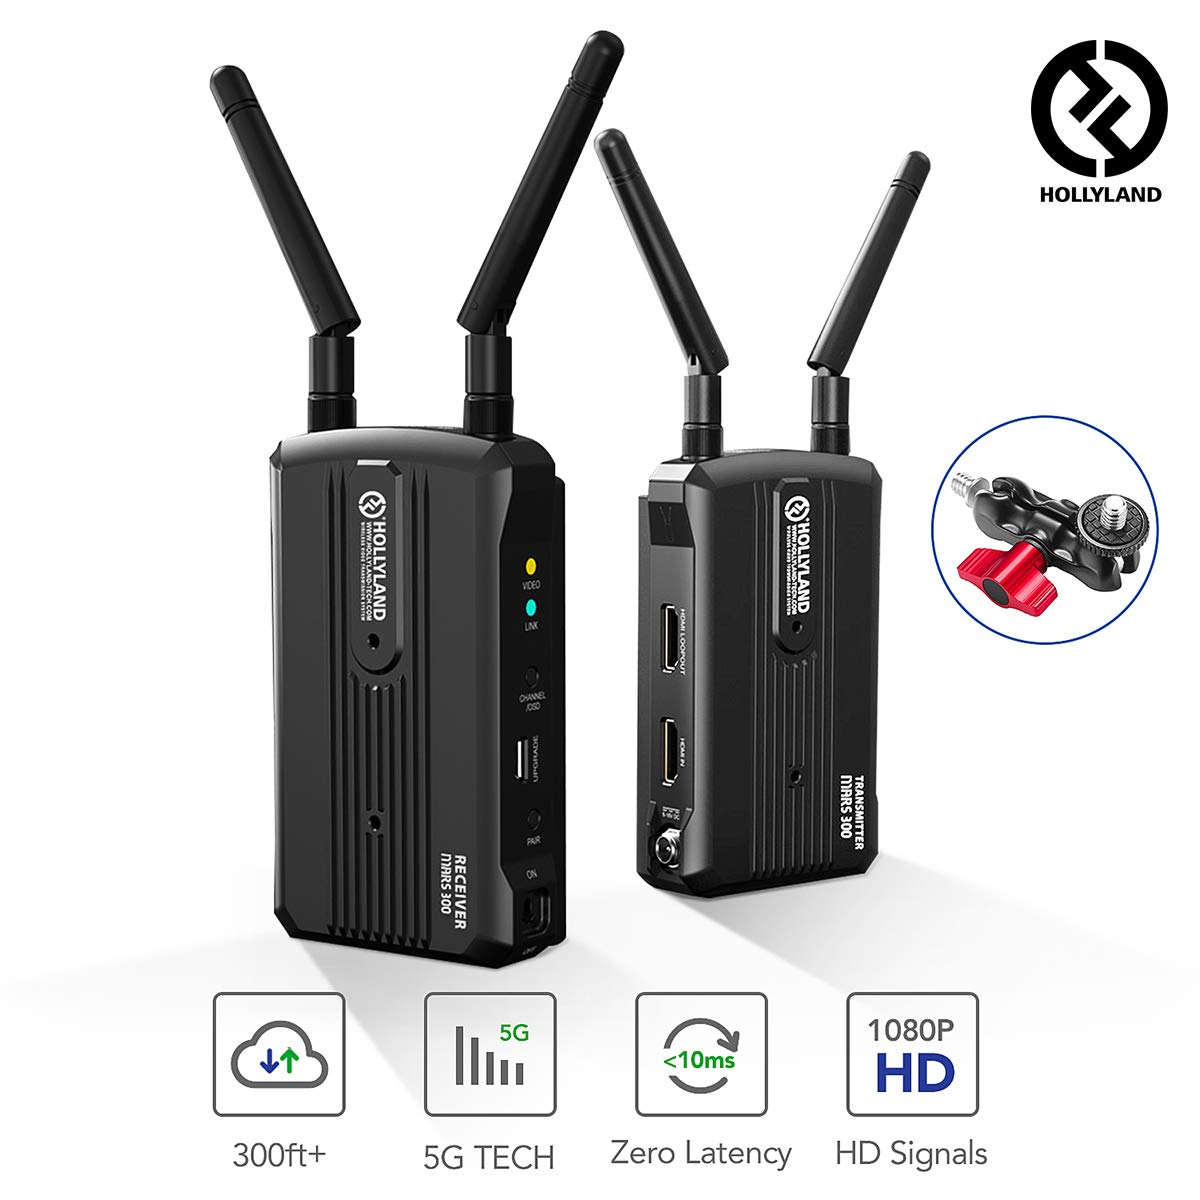 Wireless HDMI Video Transmitter and Receiver Kit, Hollyland Mars 300 5G Image Transmission System Support HD 1080P 300 Feet for DSLR and Mirrorless Camera Gimbal with Multi-Function Double Ballhead by Hollyland